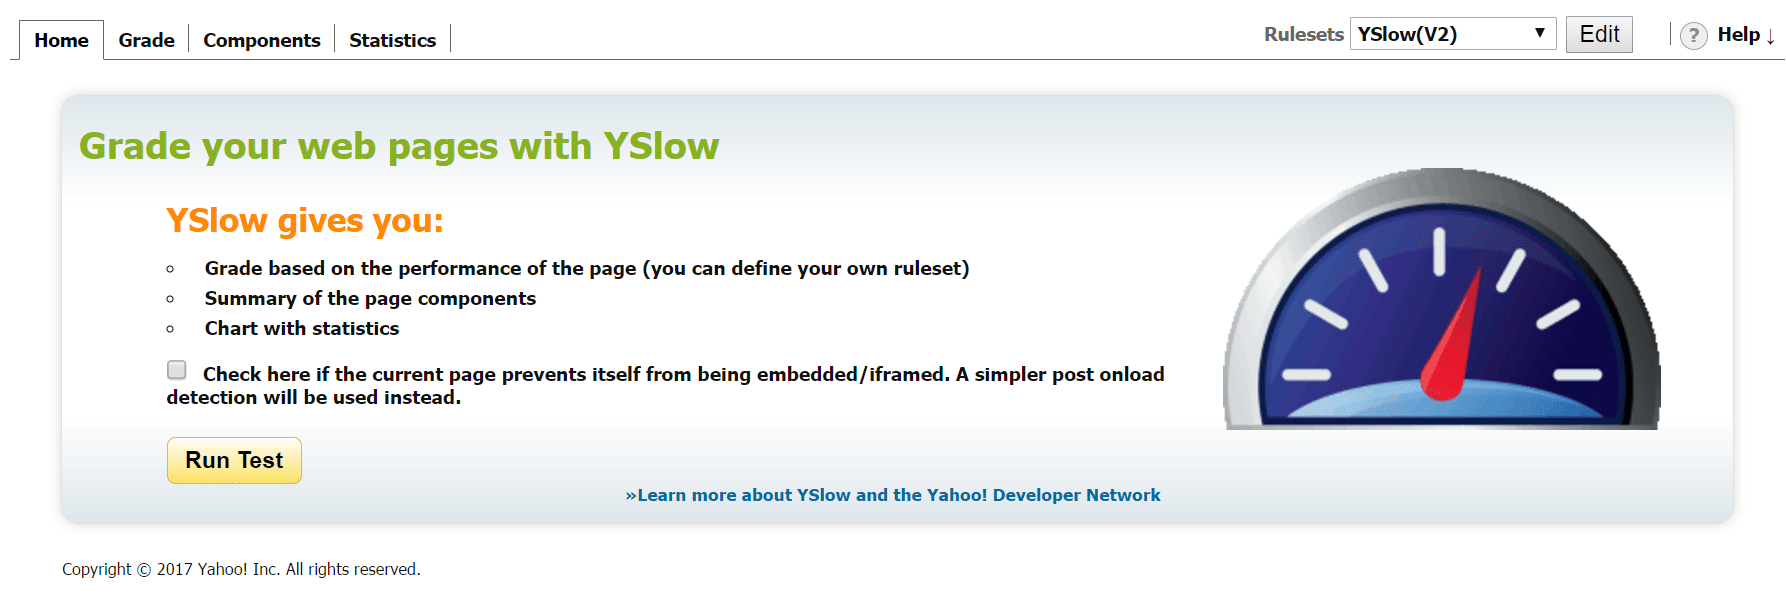 yslow-speed-test-tool